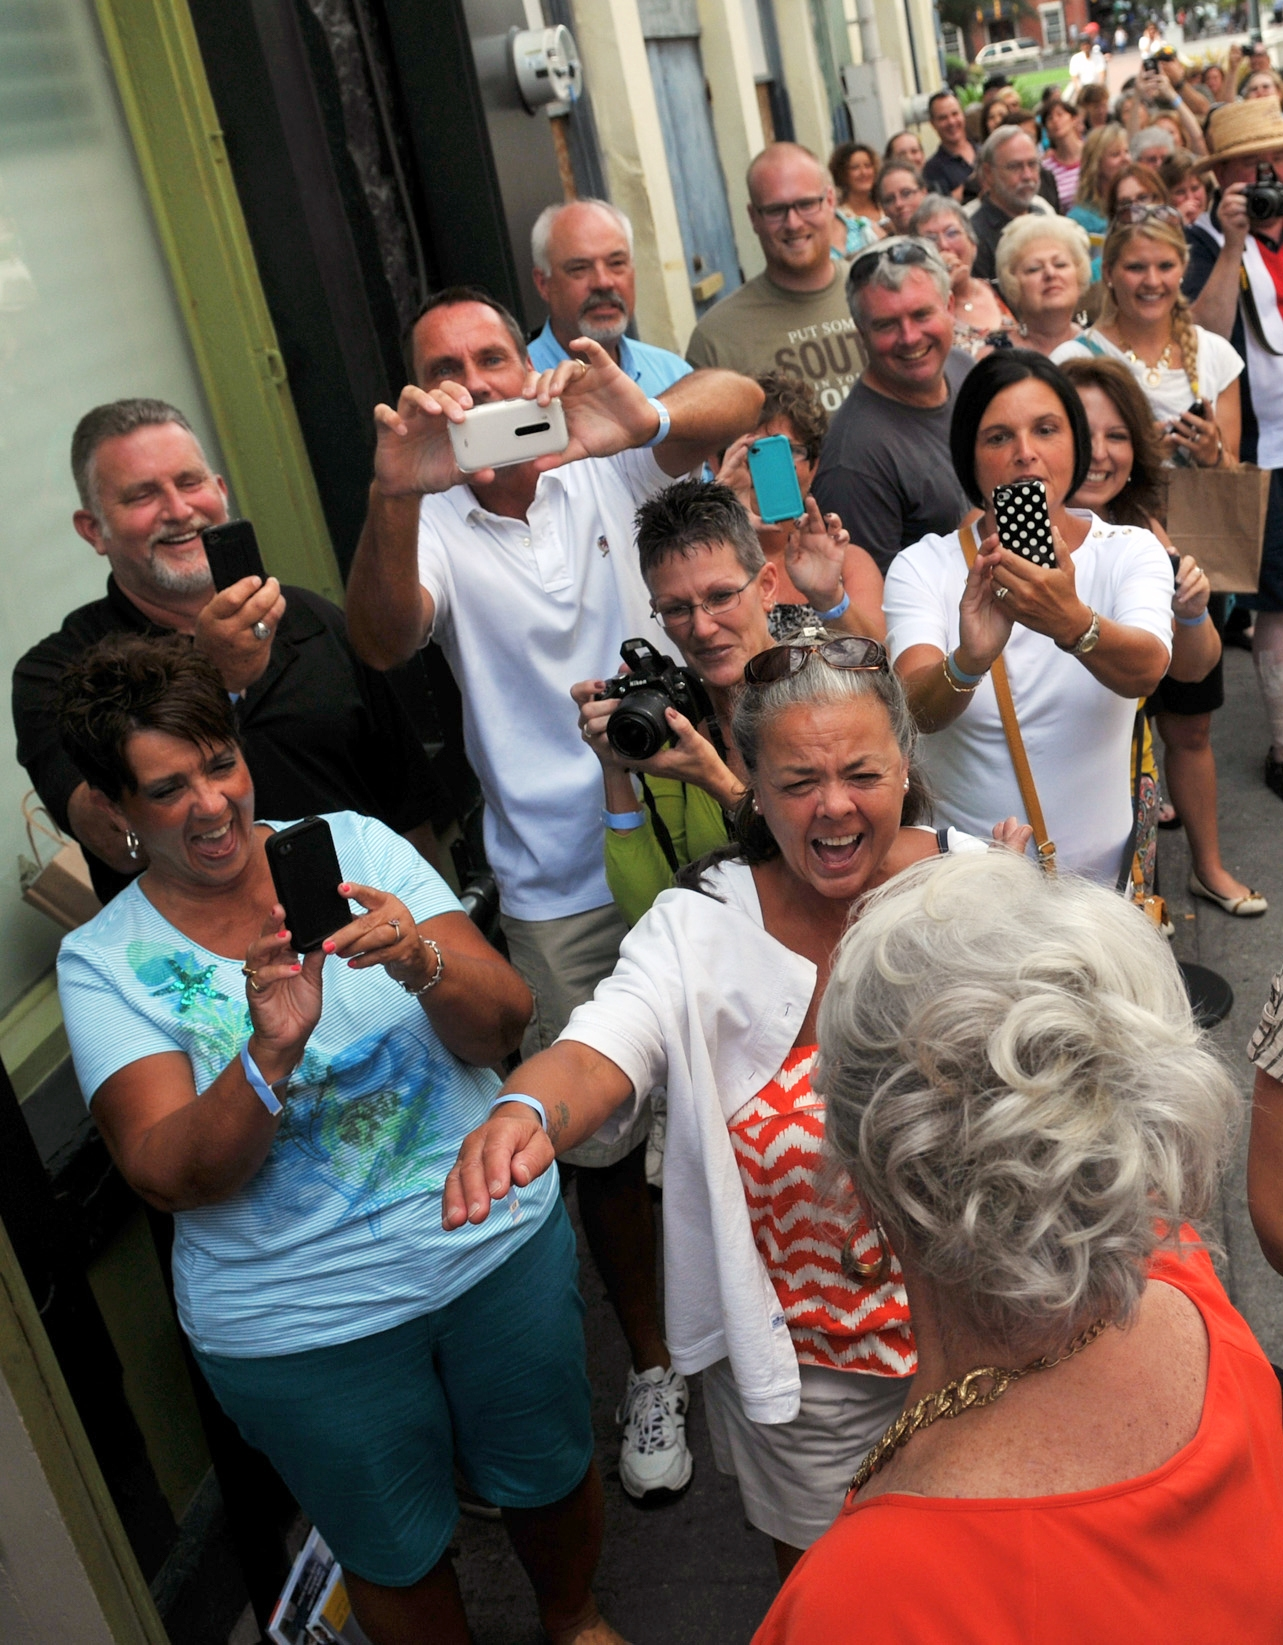 We love you, Paula: Paula Deen, lower right, greets the fans at a book-signing event in Savannah, Ga., on Thursday.